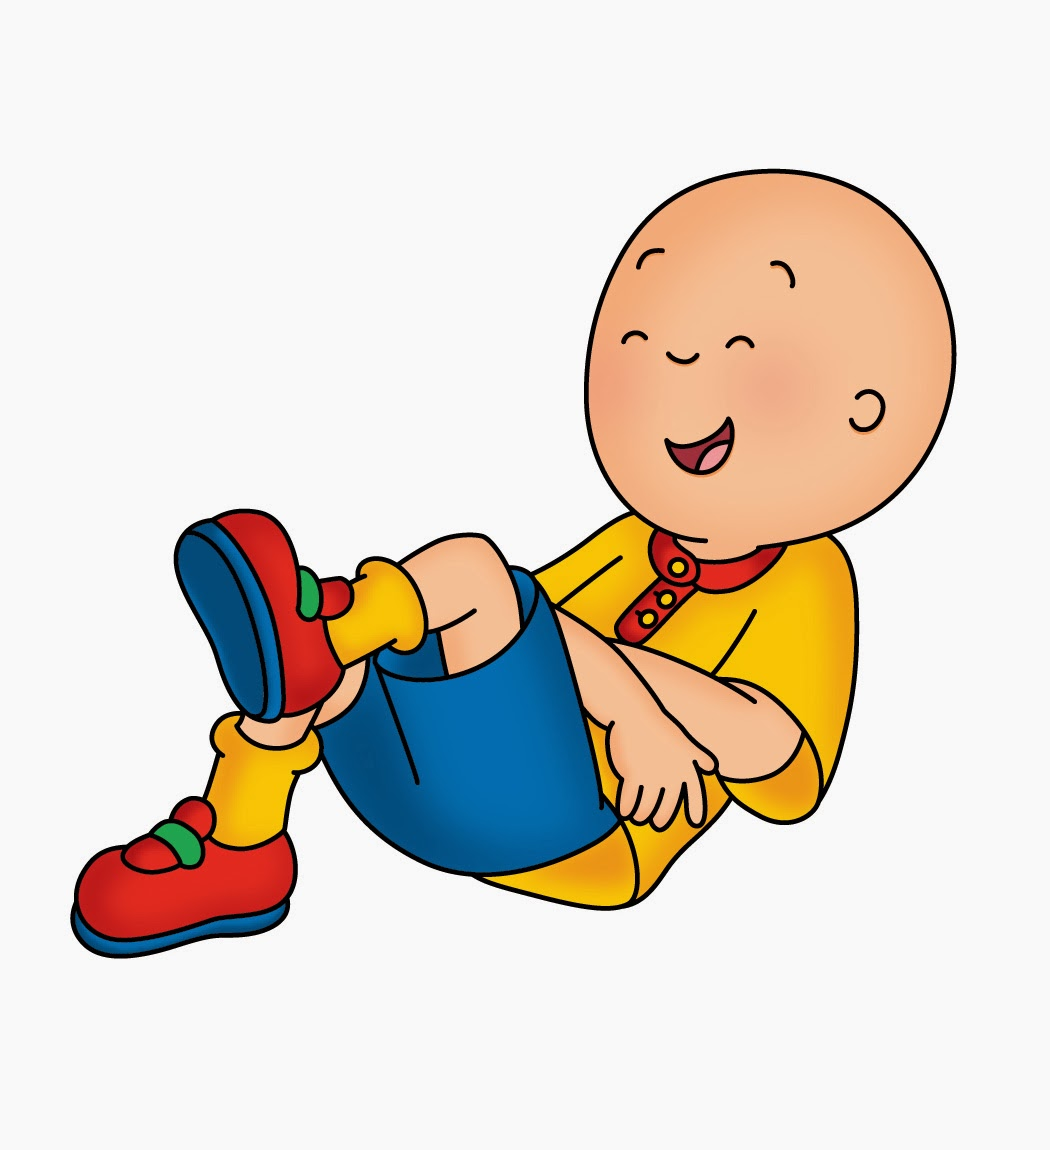 cartoon characters caillou pictures Caillou Cartoon Caillou Laughing